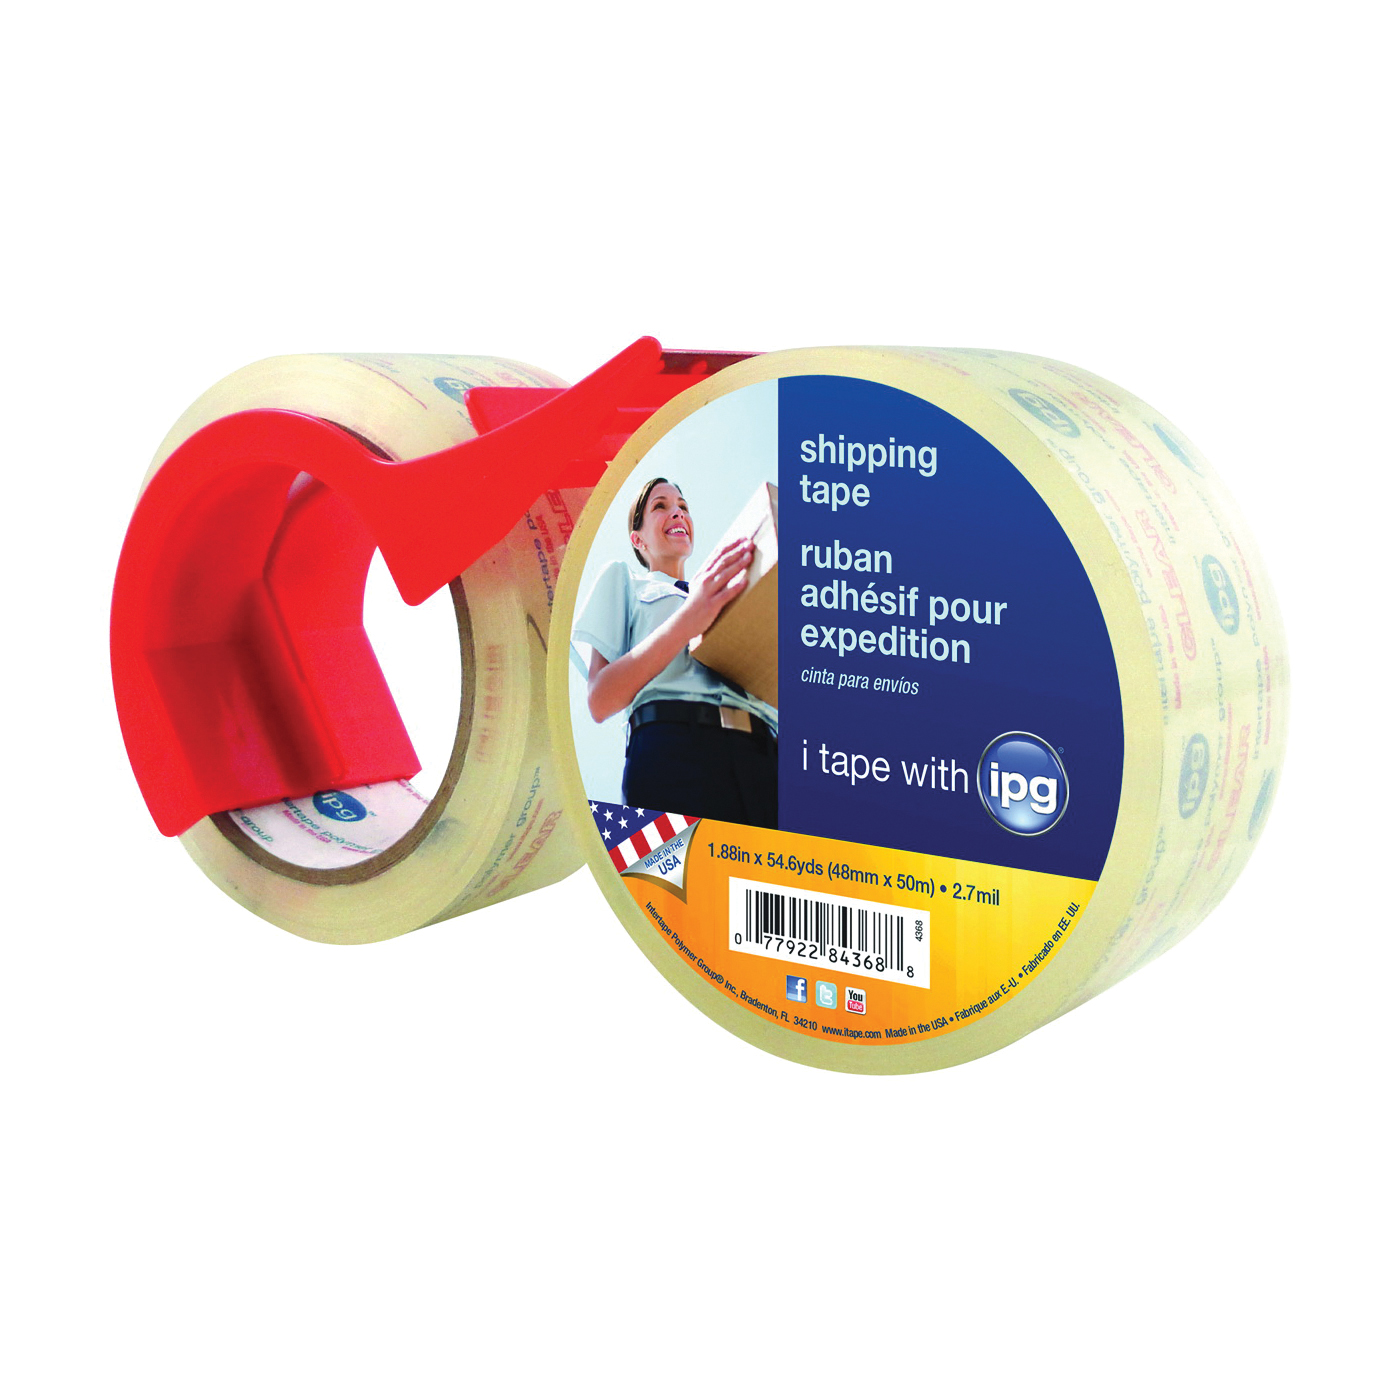 Picture of IPG 4368 Shipping Tape, 54.6 yd L, 1.88 in W, Polypropylene Backing, Clear